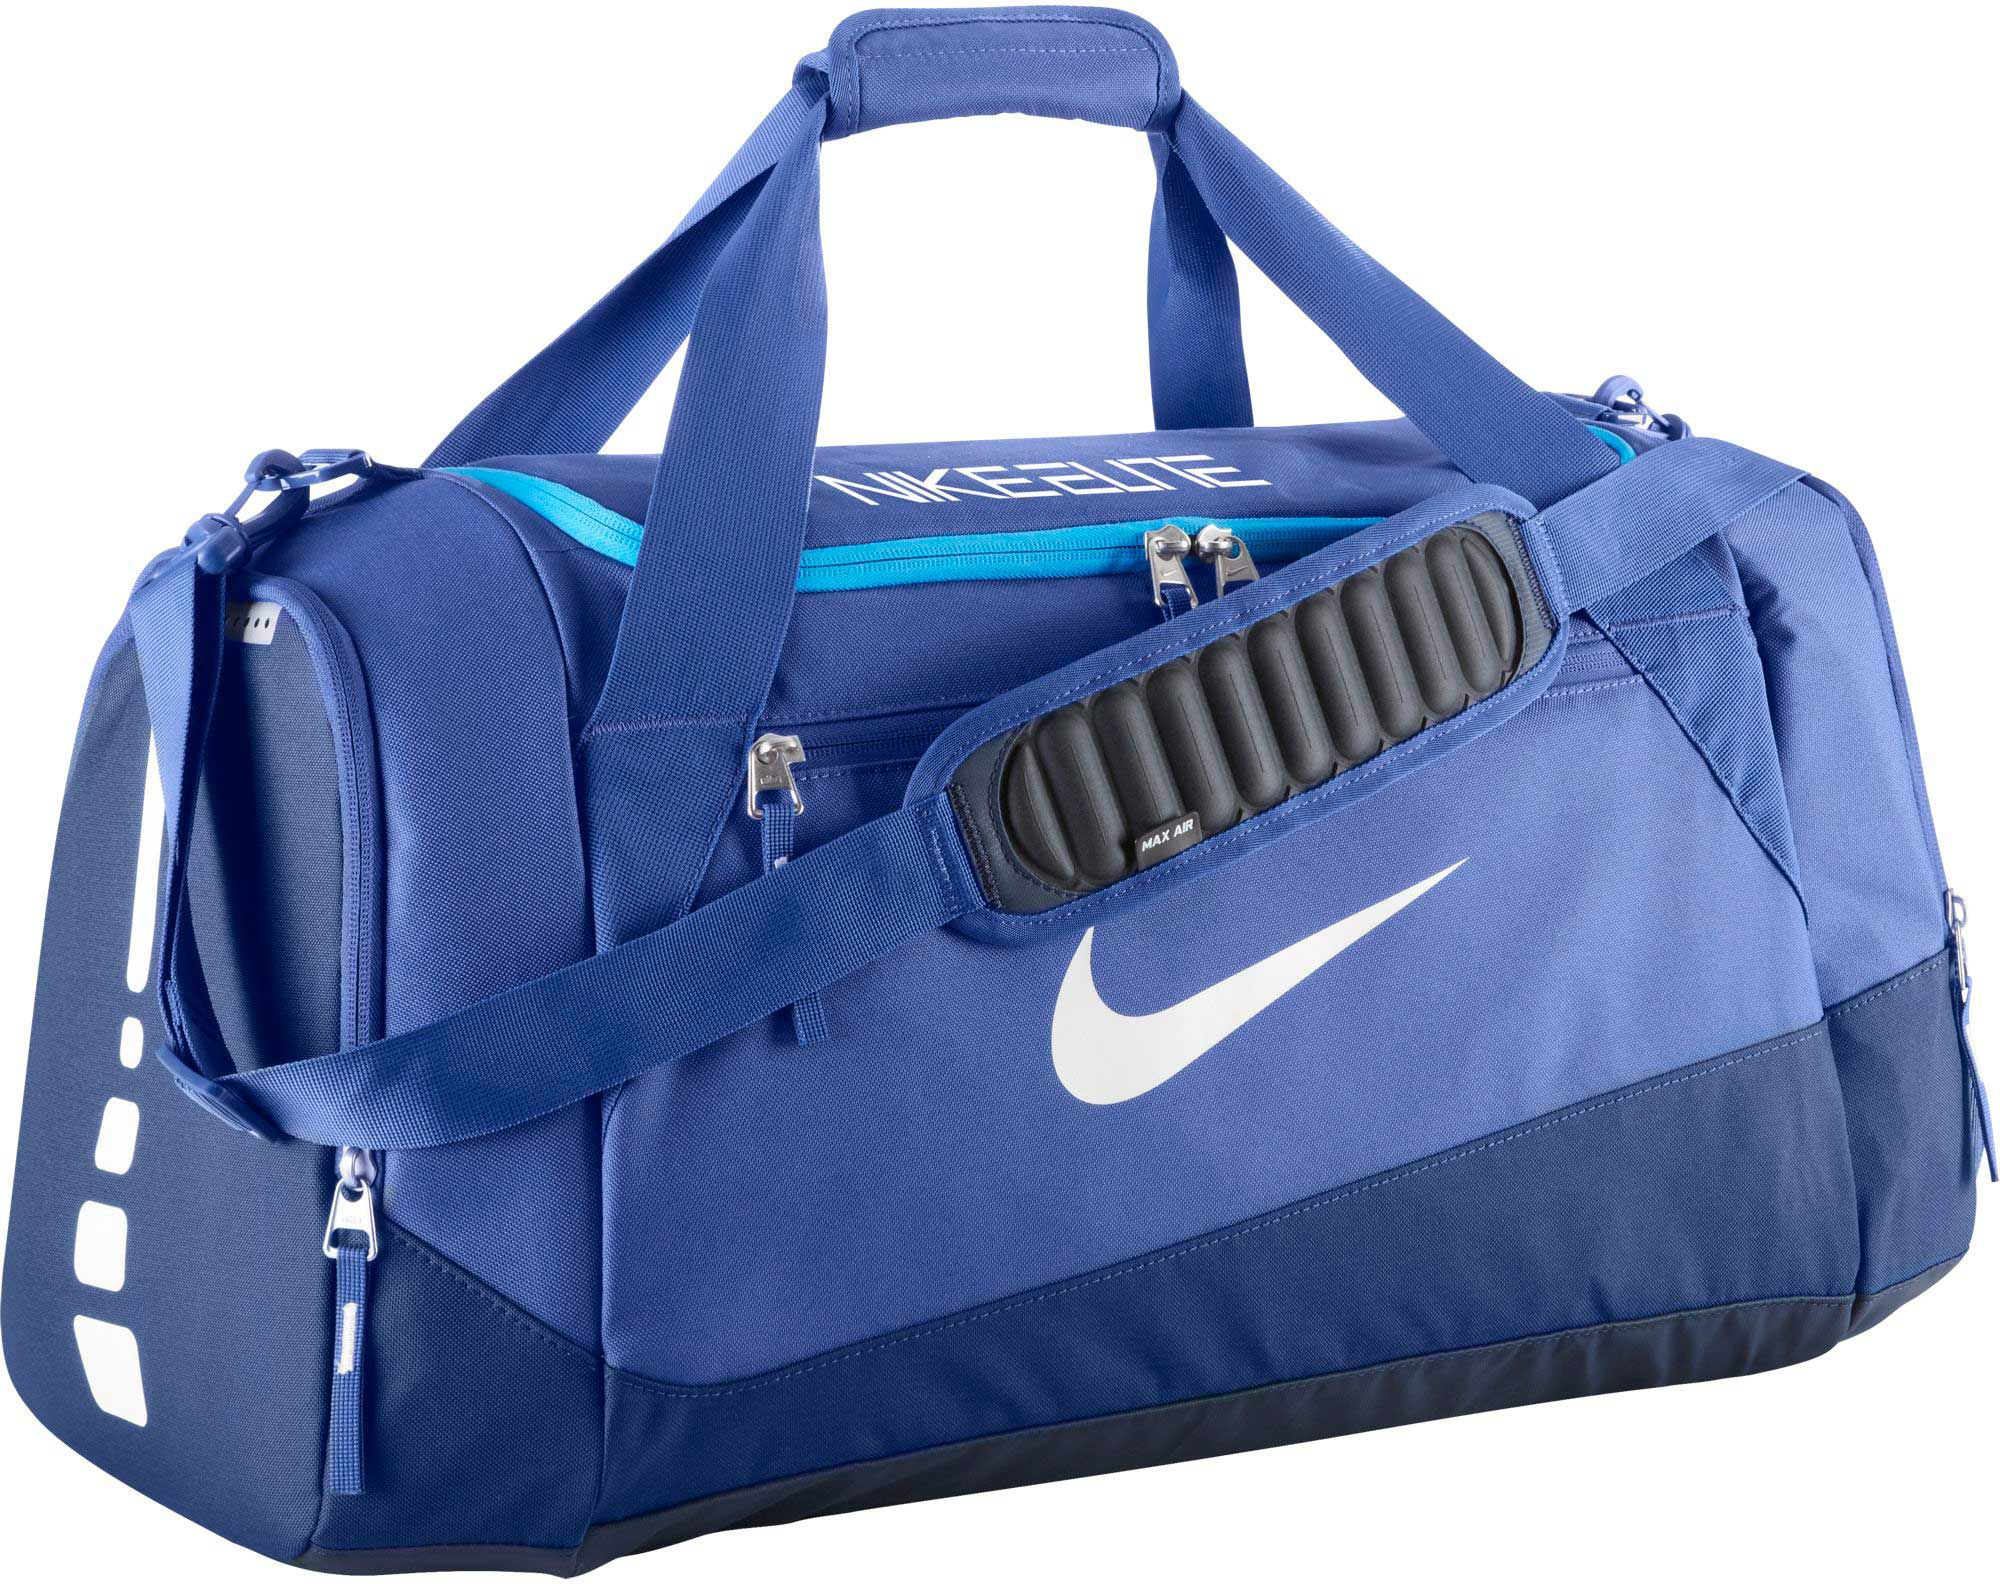 96a6e4c9967c Nike Team Training Max Air Duffel Bag Large